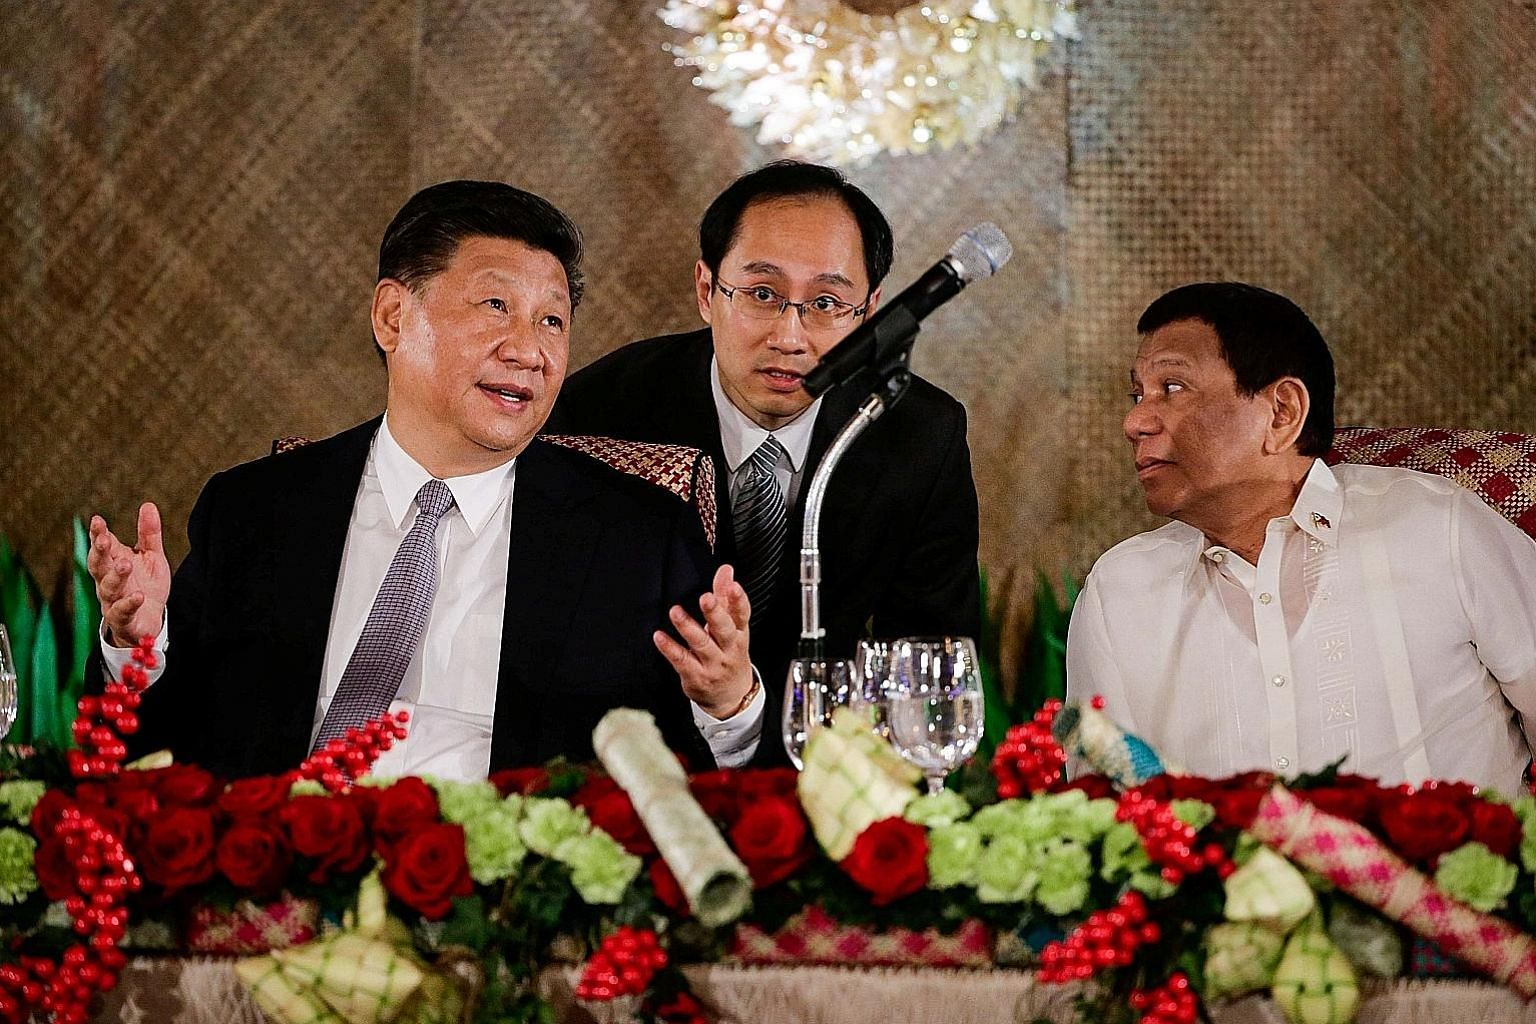 Chinese President Xi Jinping and Philippine President Rodrigo Duterte at the Malacanang Palace in Manila on Tuesday. The two presidents had an in-depth exchange of views during Mr Xi's two-day visit to the Philippines.